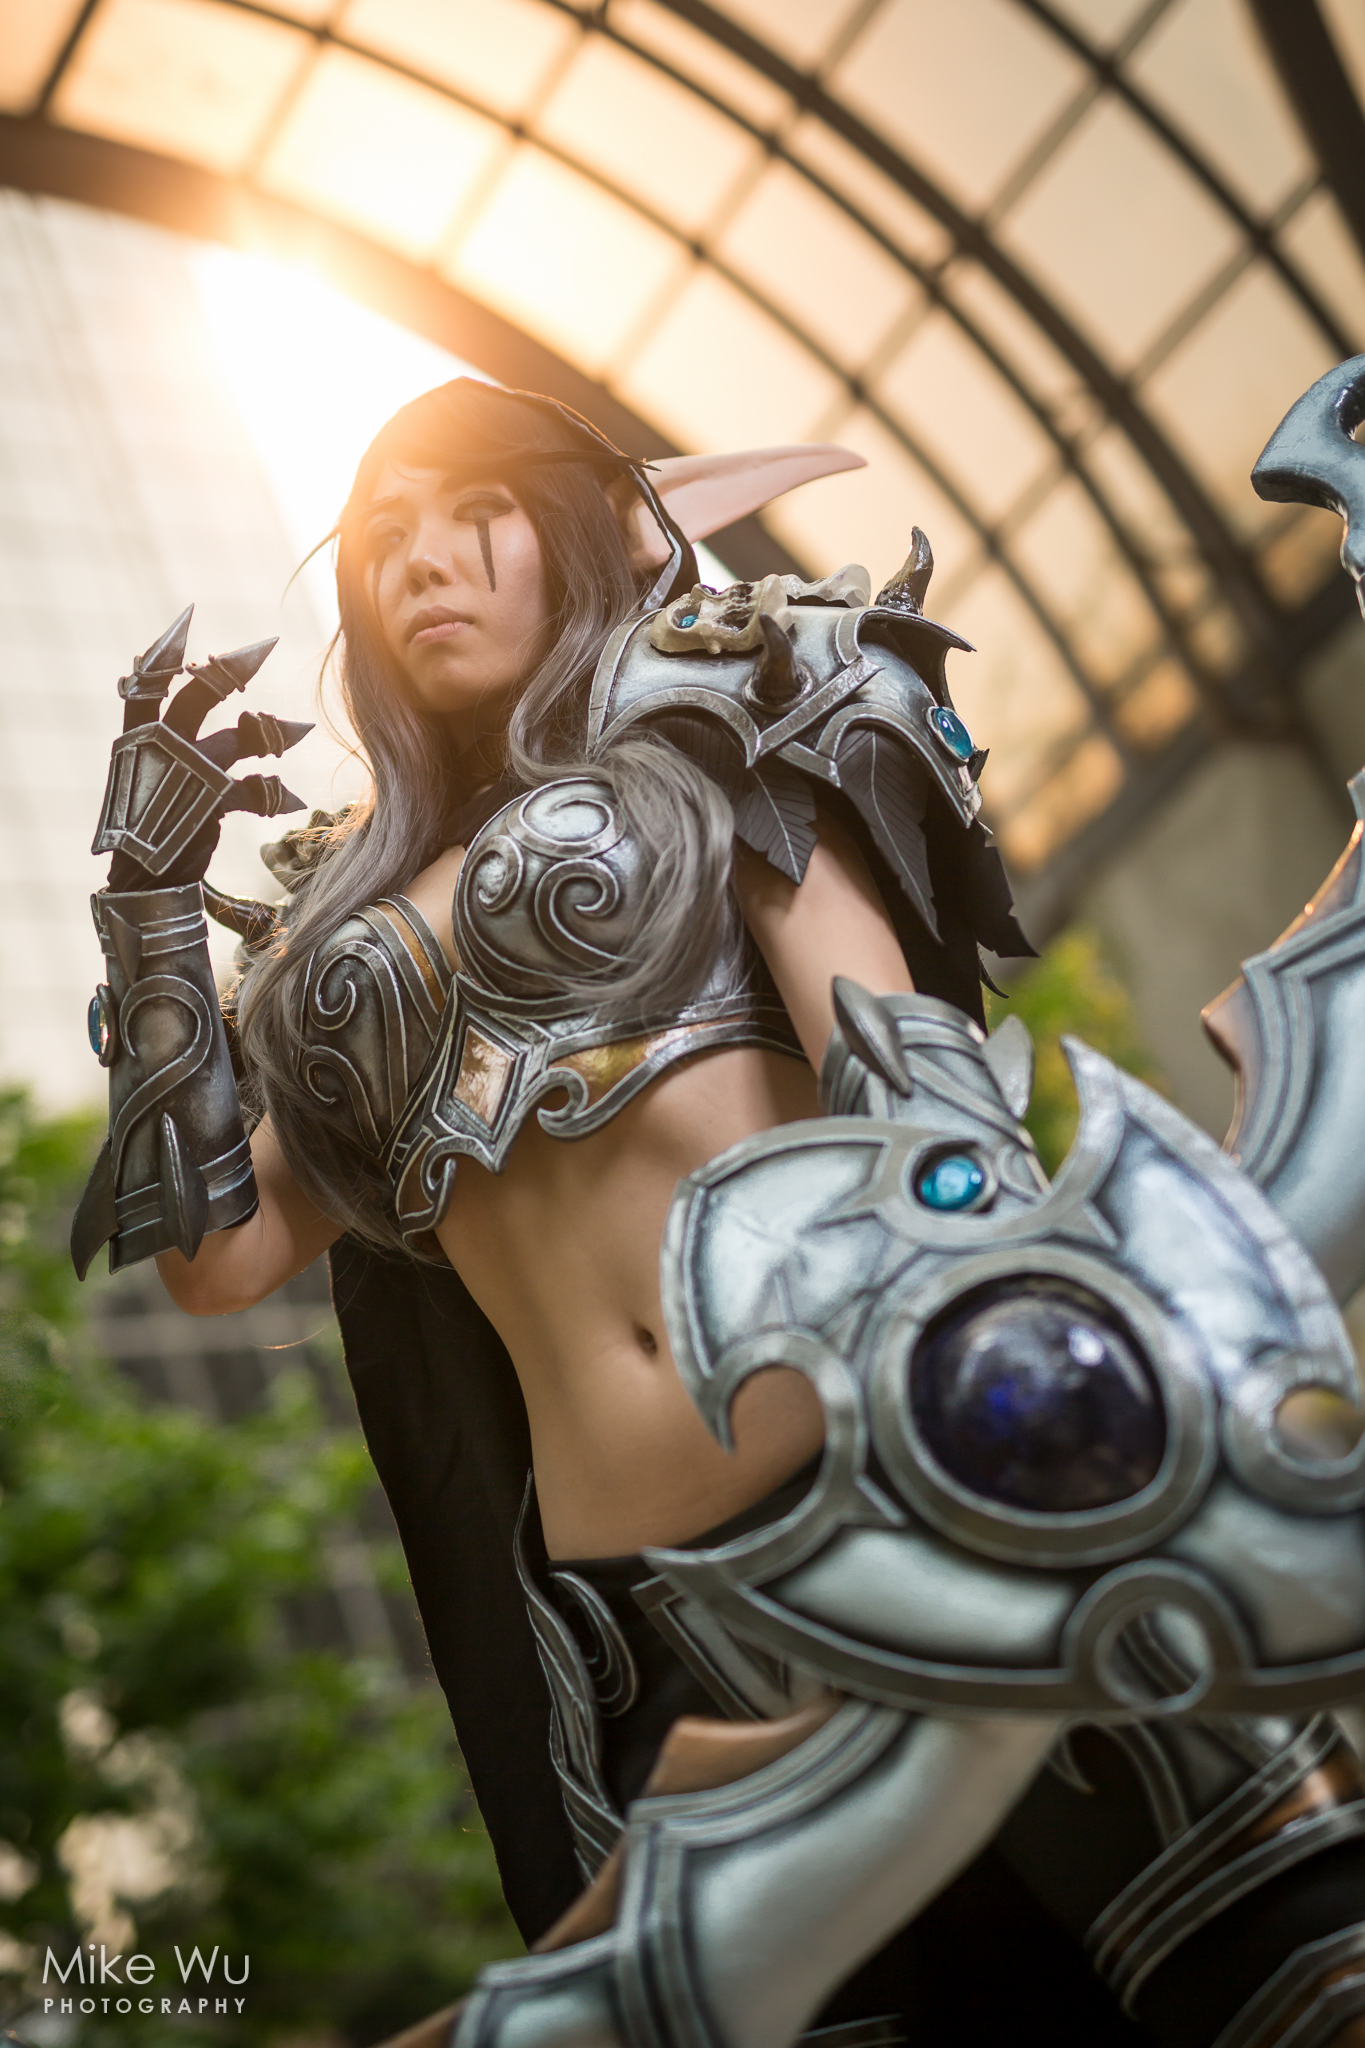 world of warcraft, elf, sylvanas, worbla, armour, archery, bow, night elf, vancouver, anime revolution, convention, arch, sunset